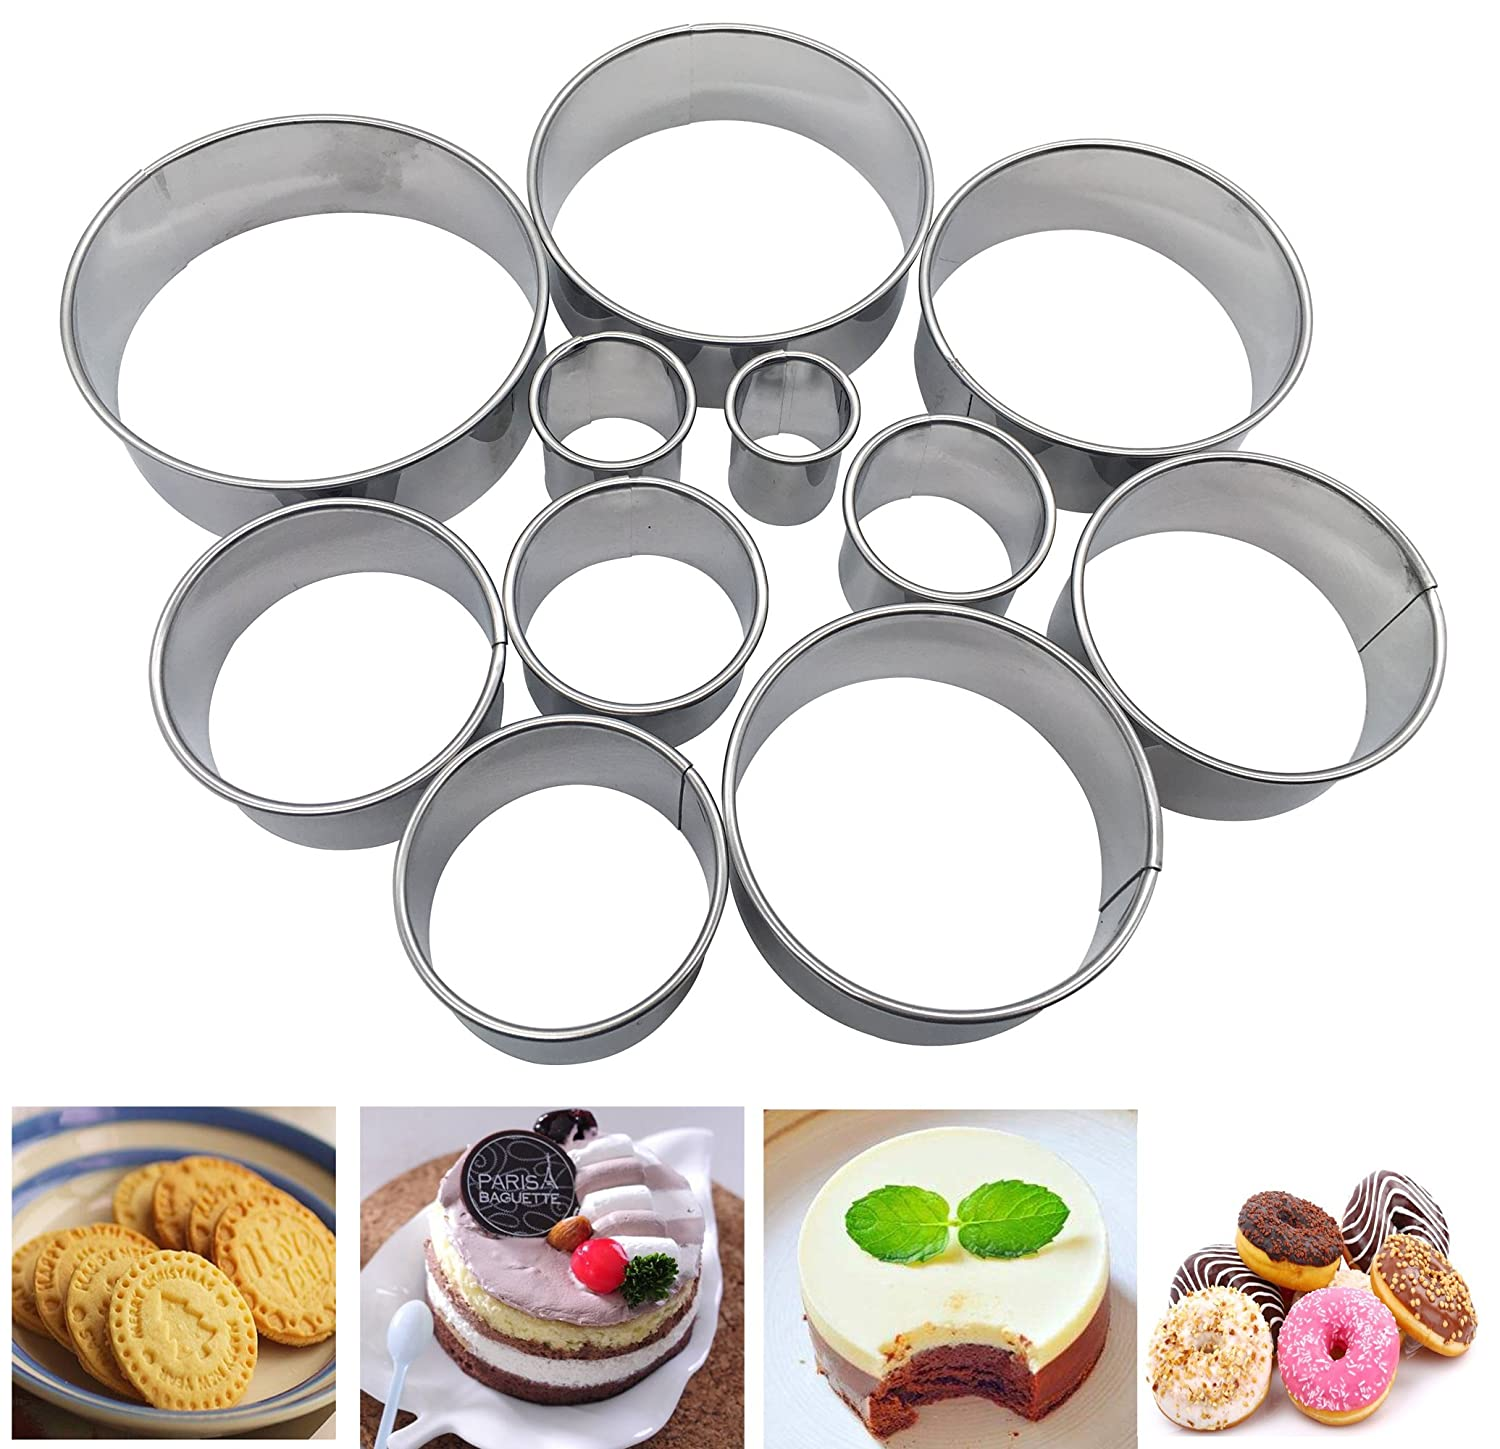 Round Cookie Biscuit Cutter Set of 11- Quality Circle Pastry Cutters - Nesting Stainless Steel Ring Cookie Cutting Set Molds for Mousse, Dough, Chocolate, Fondant, Donut and Muffins, Includes Storage Kootips-1-3029